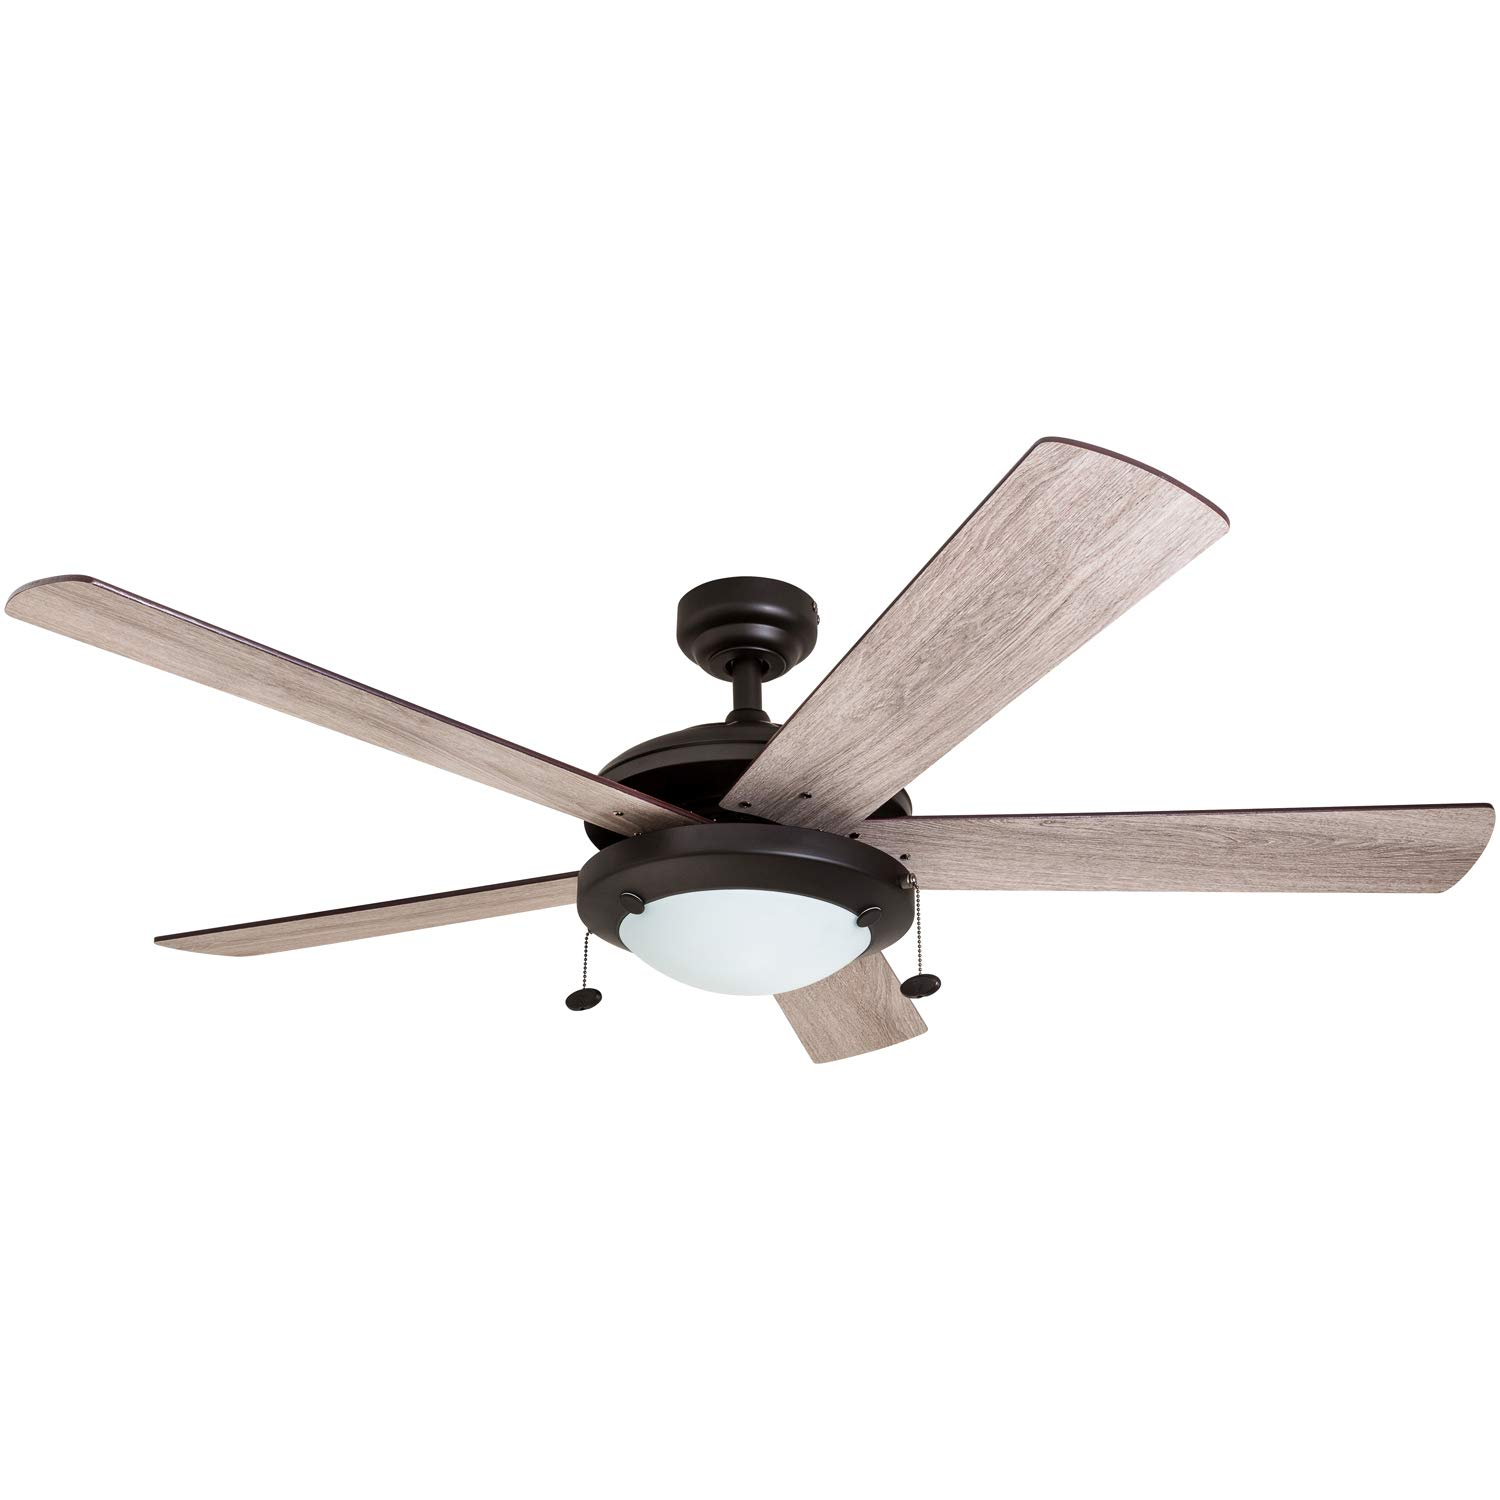 Prominence Home 80099-01 Bolivar LED Ceiling Fan, Modern Farmhouse, 52 Dual-Finish Blades, Espresso